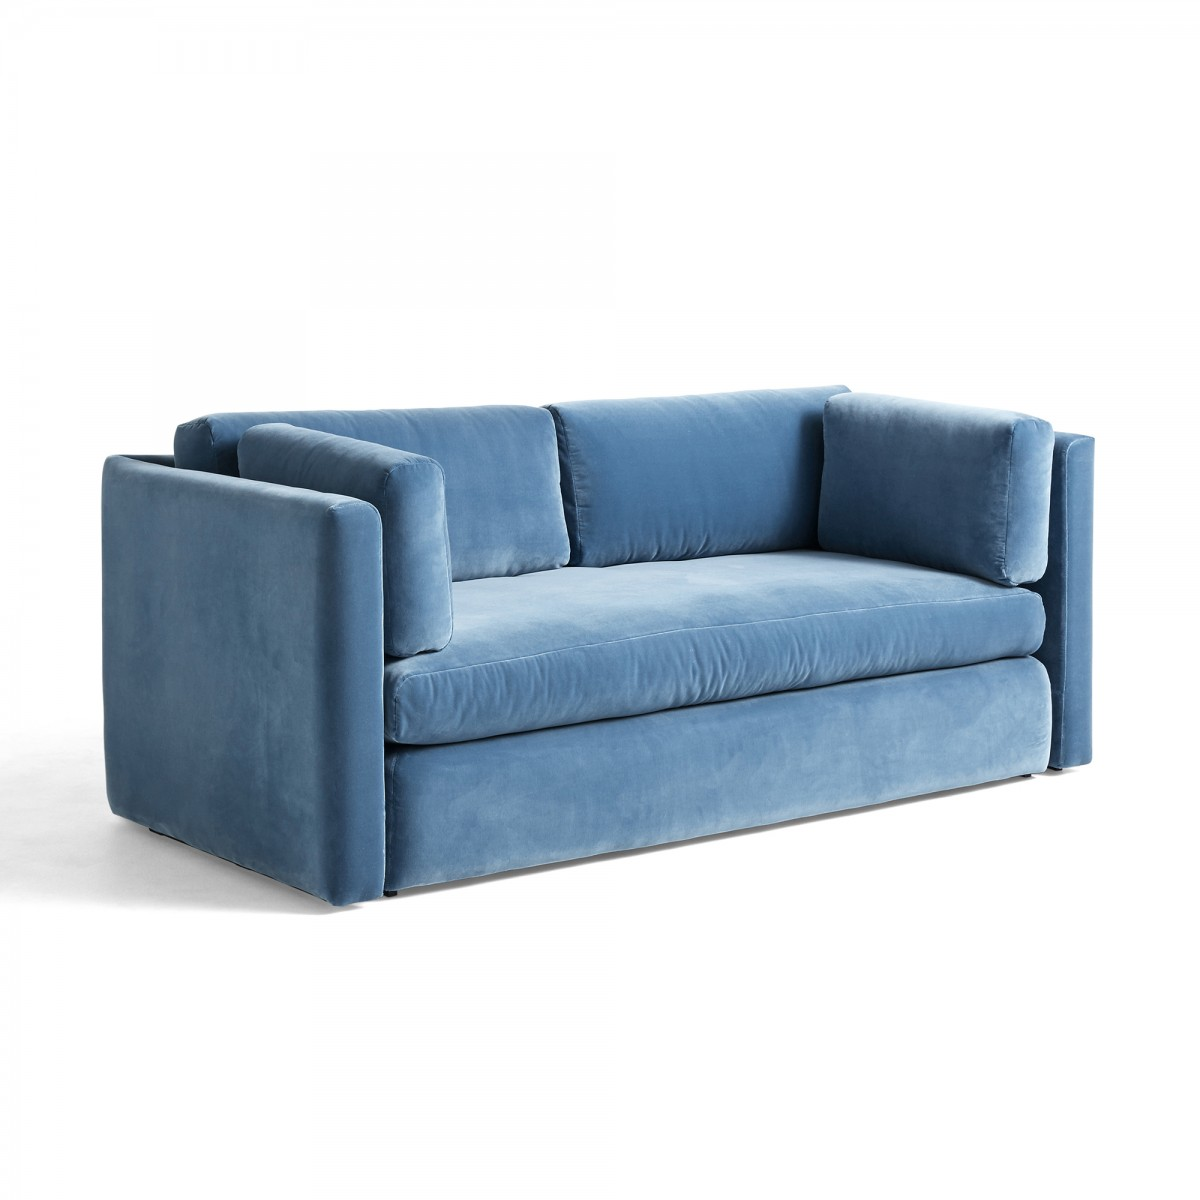 HACKNEY blue velvet sofa - HAY